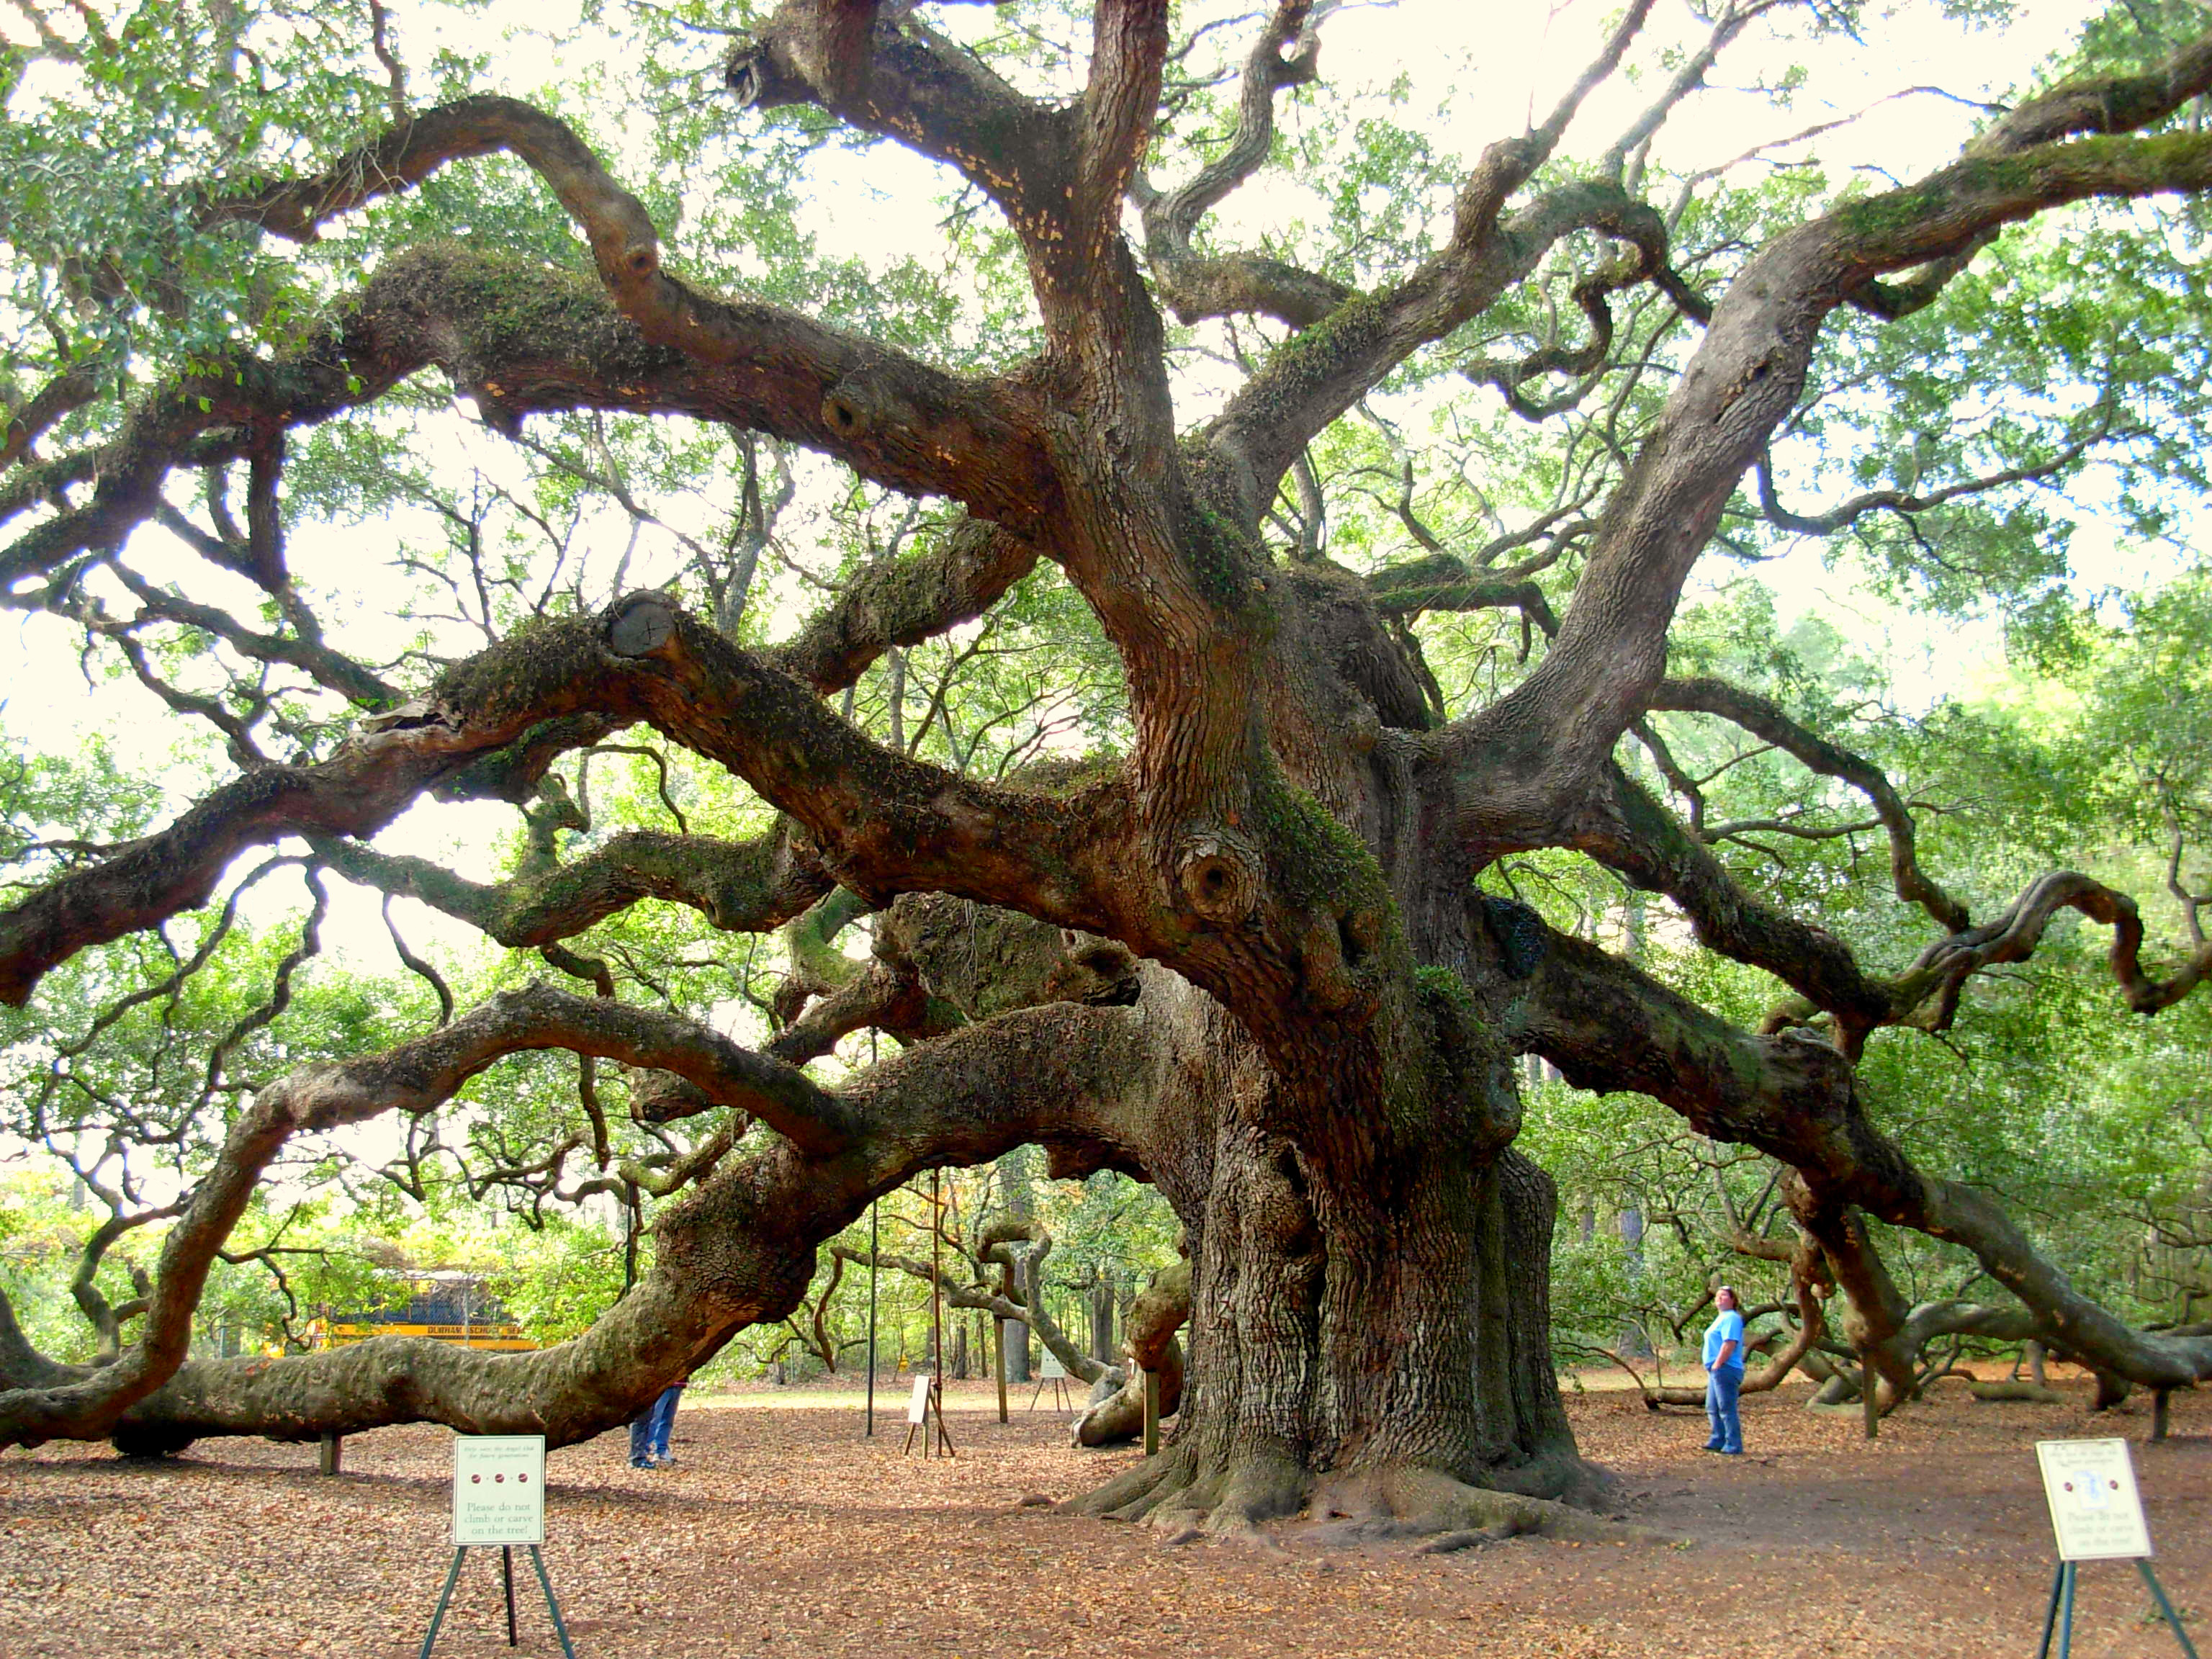 Angel Oak John's Island South Carolina ghosts haunted